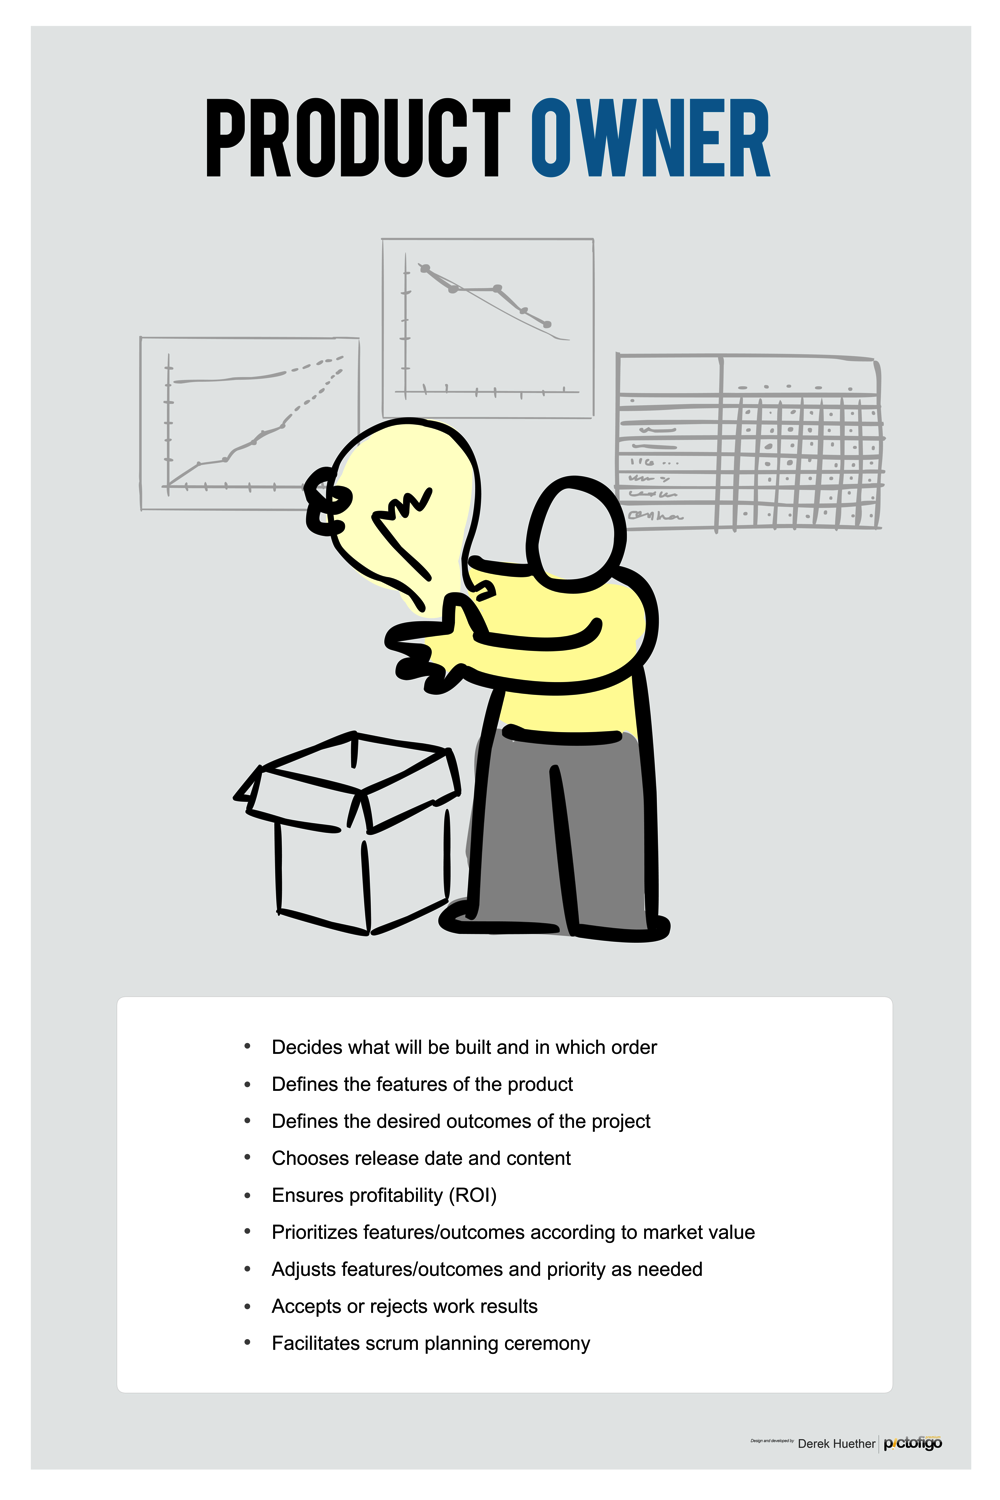 Male Product Owner - What are the attributes of a Product Owner? Perfect for dressing up any wall, or instantly creating a theme for a room. Images look great on this high-quality poster.Available in 11